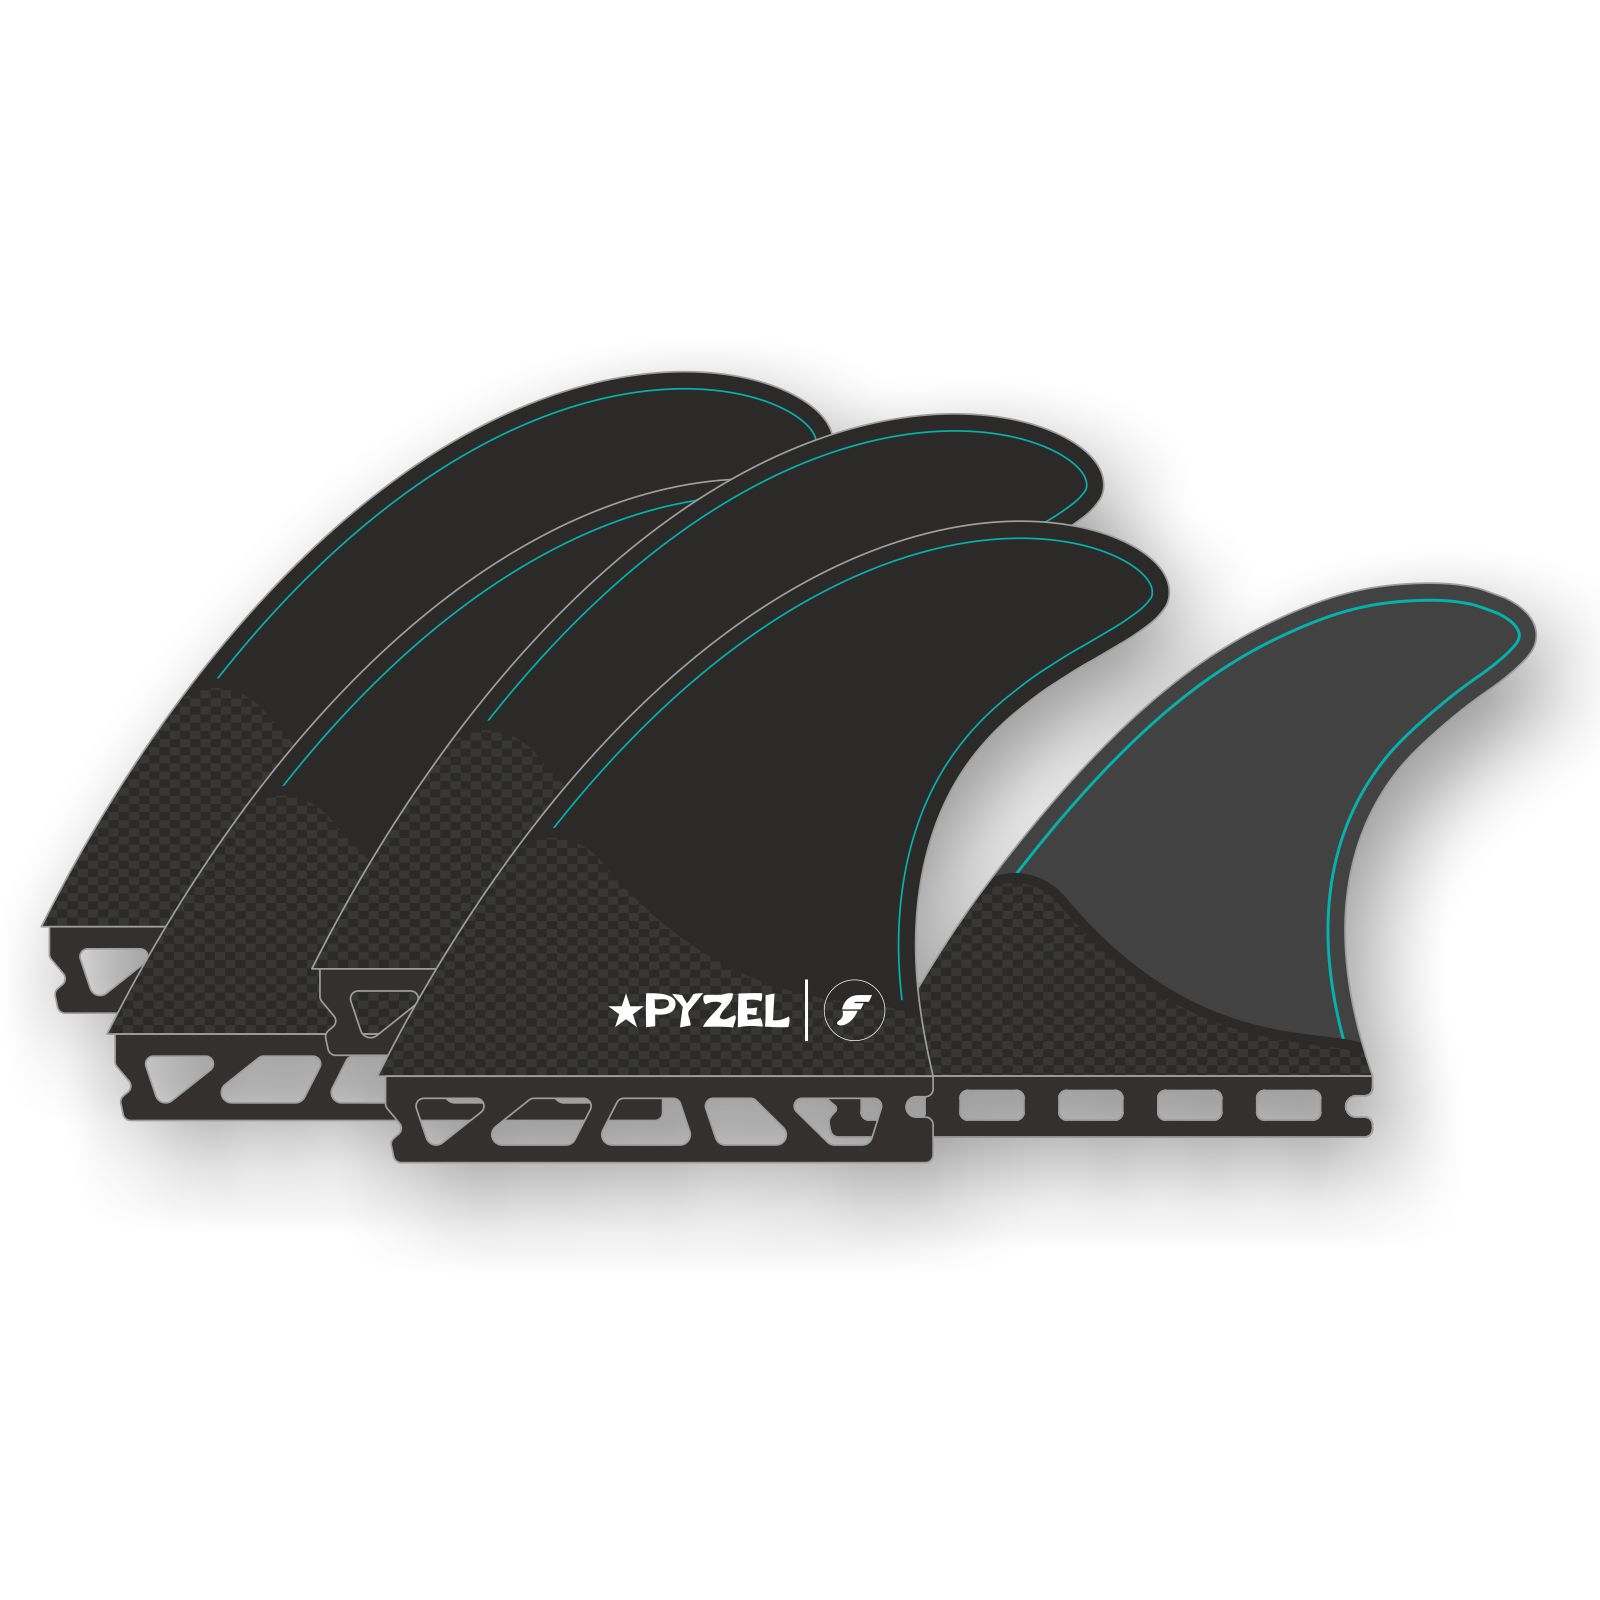 FUTURES Quad Thruster 5 Fin Set PYZEL M Honeycomb NEW March 2020